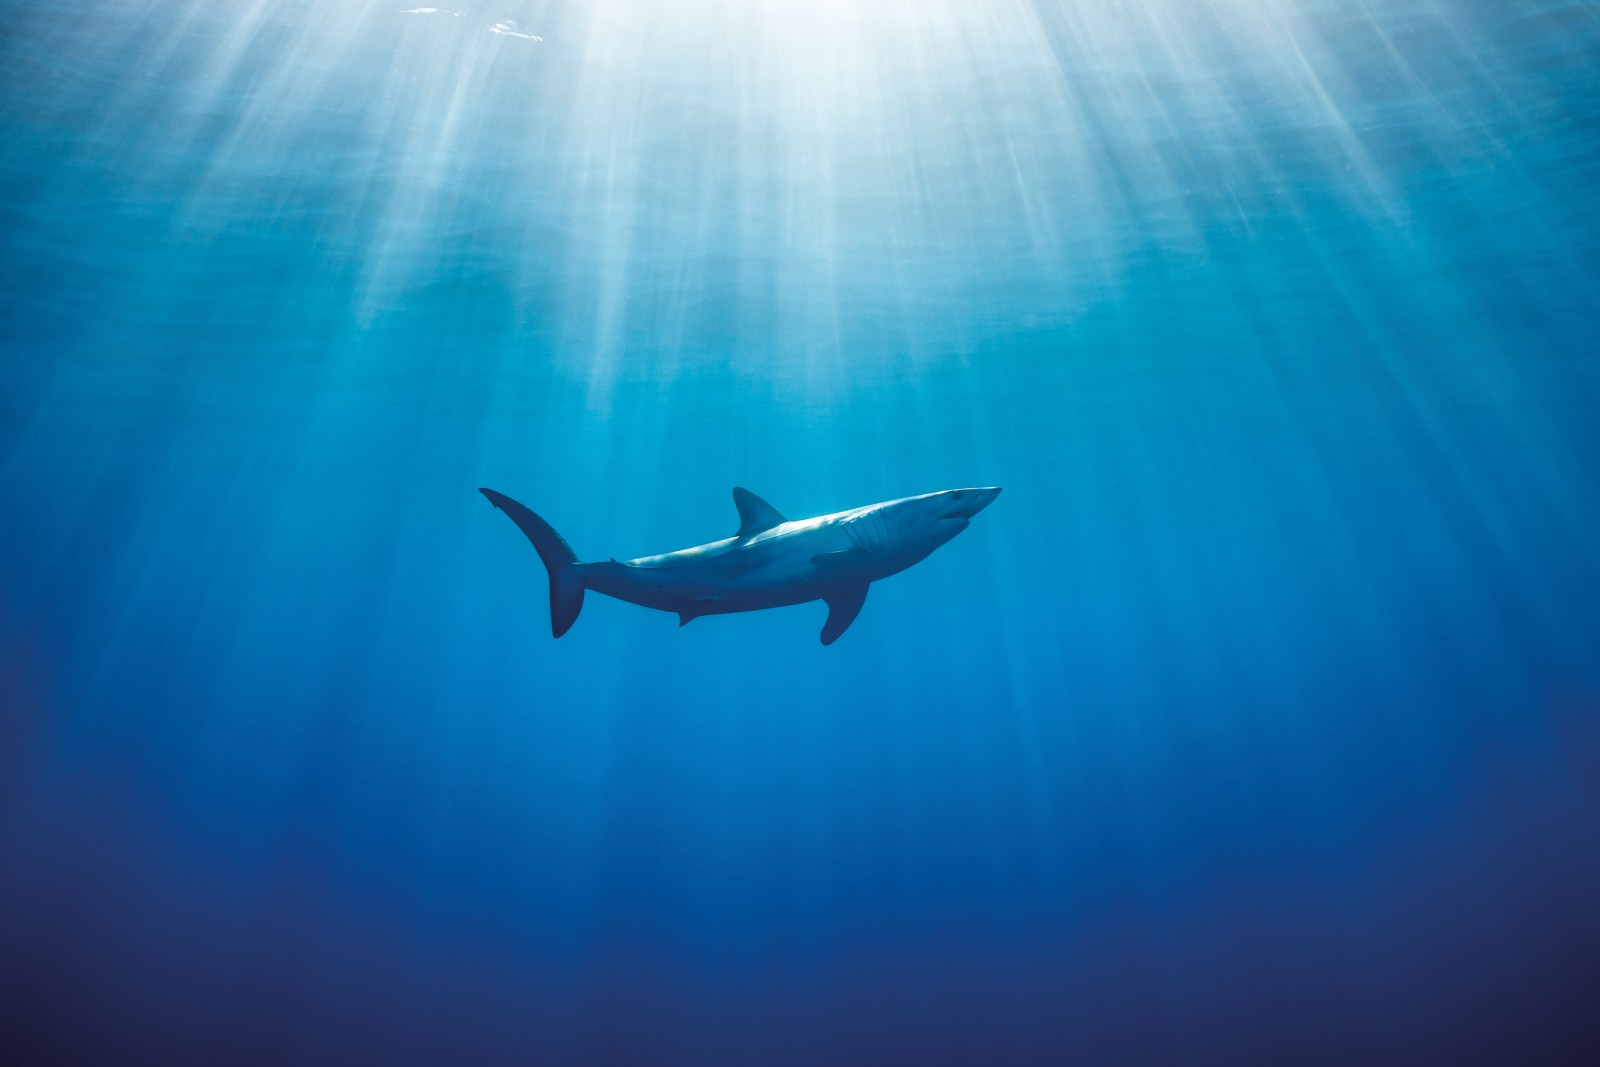 In New Zealand waters, male mako sharks (identifiable by a pair of claspers near the anal fin) far outweight females in number, but not in size. A female mako may be twice as heavy as a male, and will not reach sexual maturity until she is almost 20 years old. (Males are mature at around nine.) Juveniles are very common in the North Island's warmer seas, but no one knows where the females give birth.